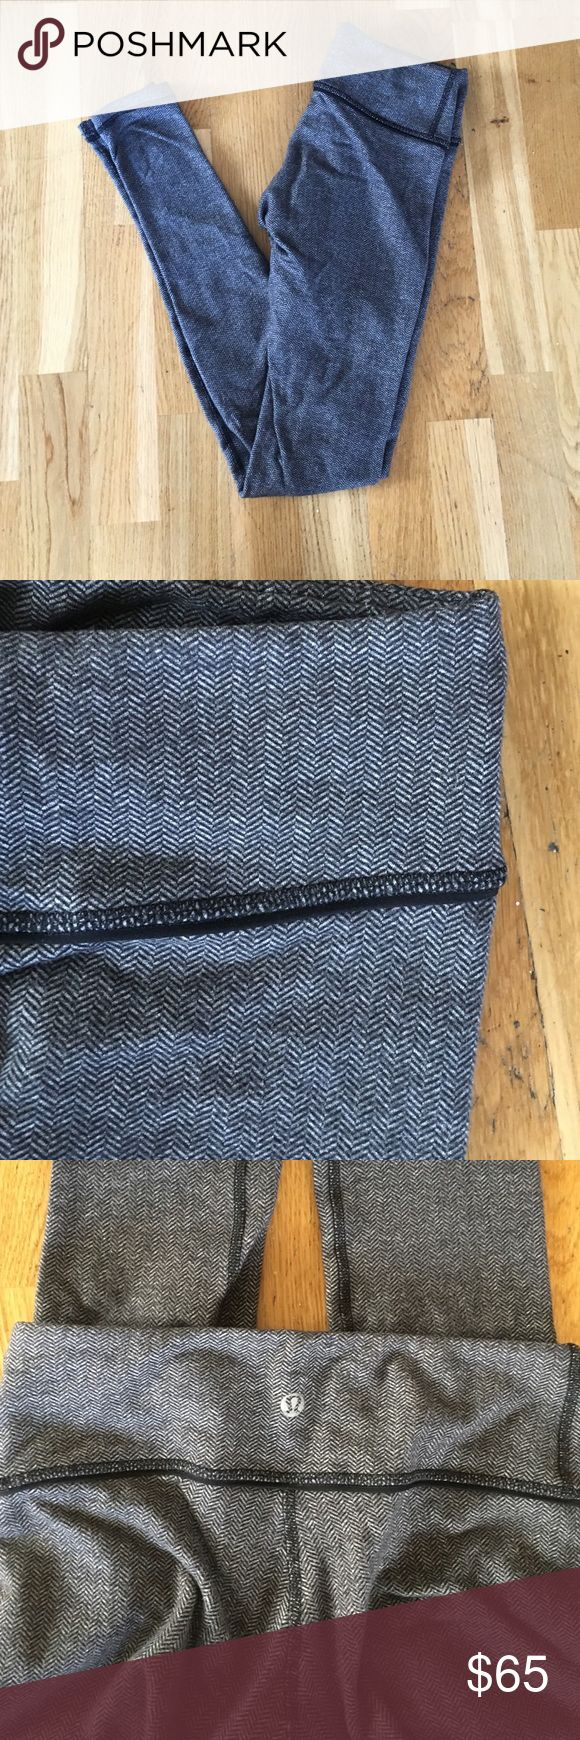 Super rare lululemon herringbone wonderunders Super comfy, have slight wear on the butt and bottom of the pants. They are made of thicker luon so they are warmer but I still wore them year round. Any lululemon store can hem them for you if needed. For some reason these didn't get stamped with a size but they are a size 2. lululemon athletica Pants Leggings